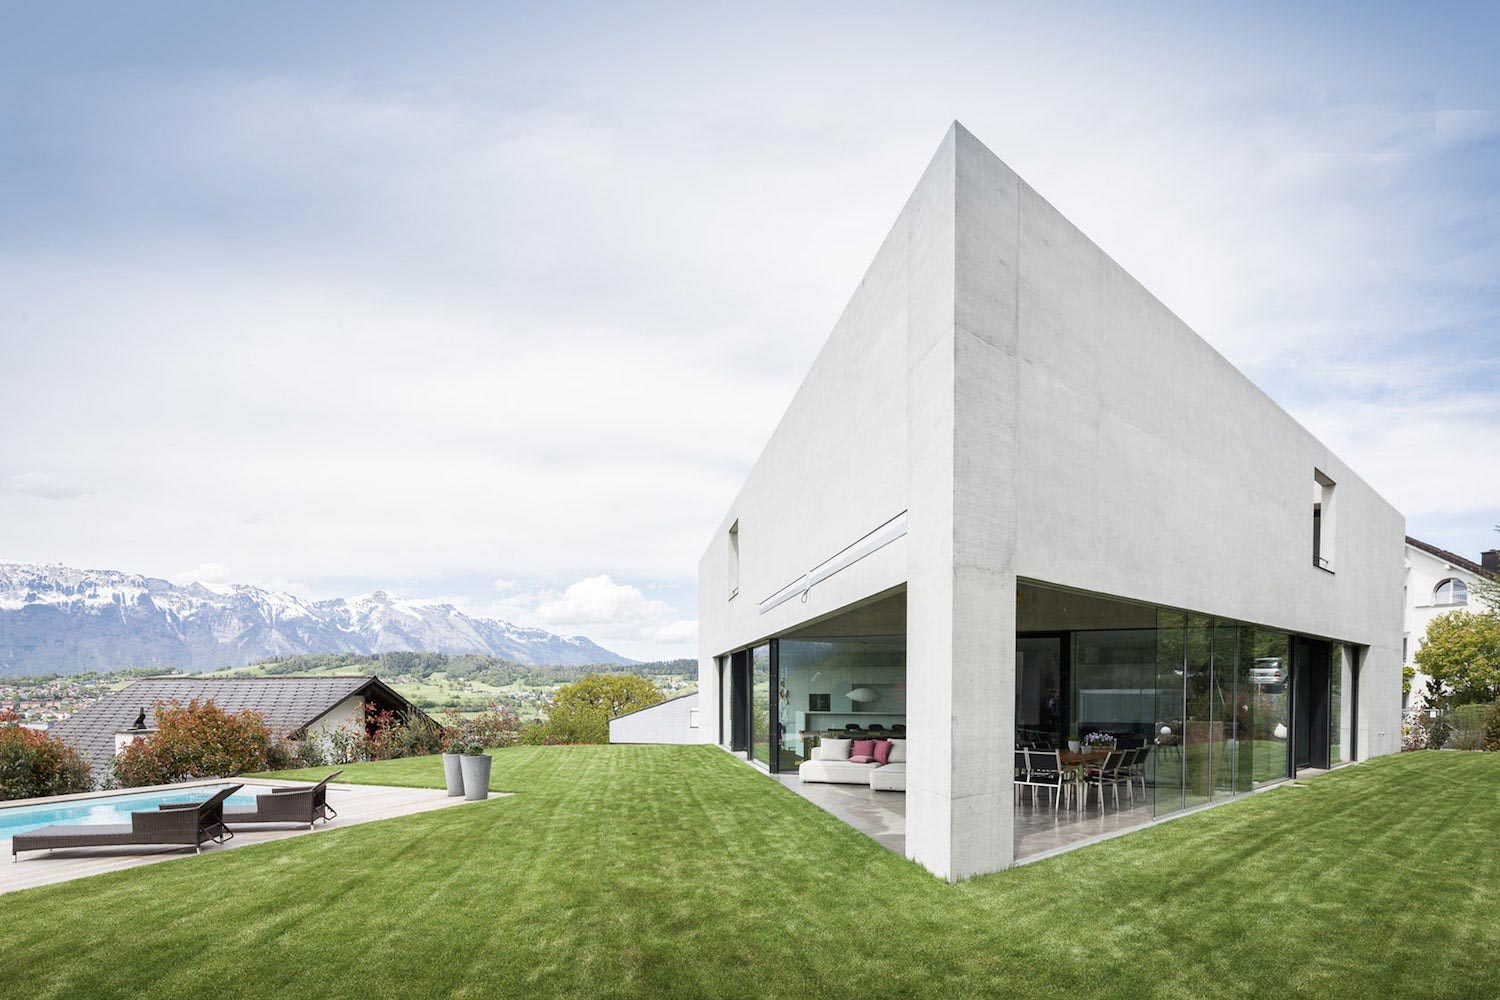 Monolithic triangle structure of a house high up on the